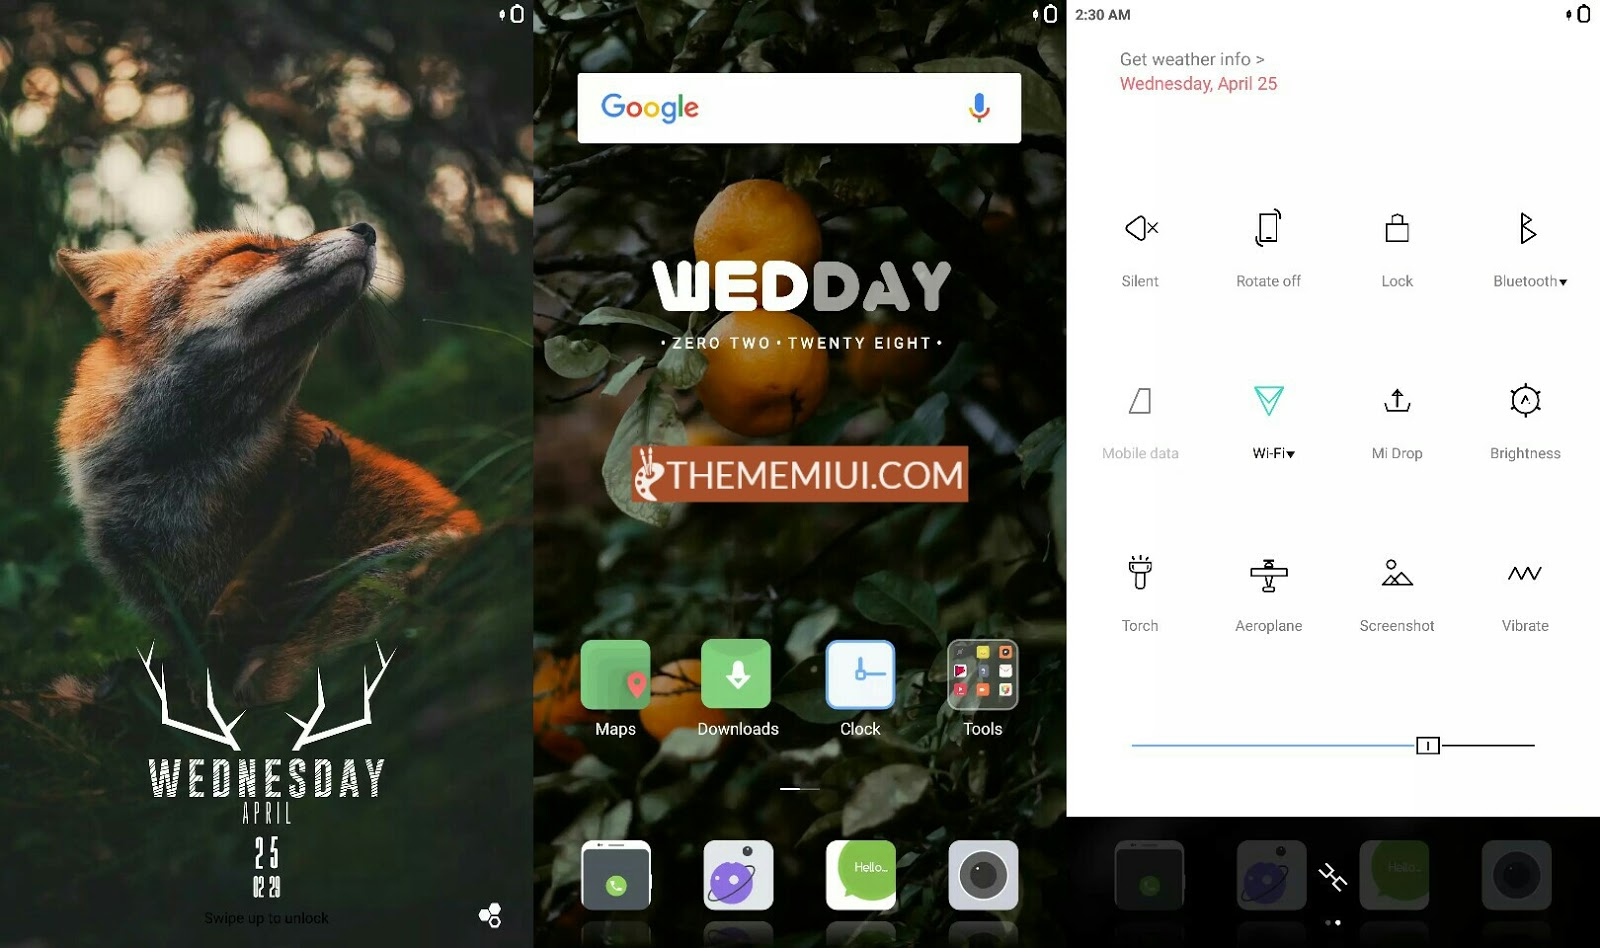 Flox Ui Light v3 MIUI 10 Theme.mtz